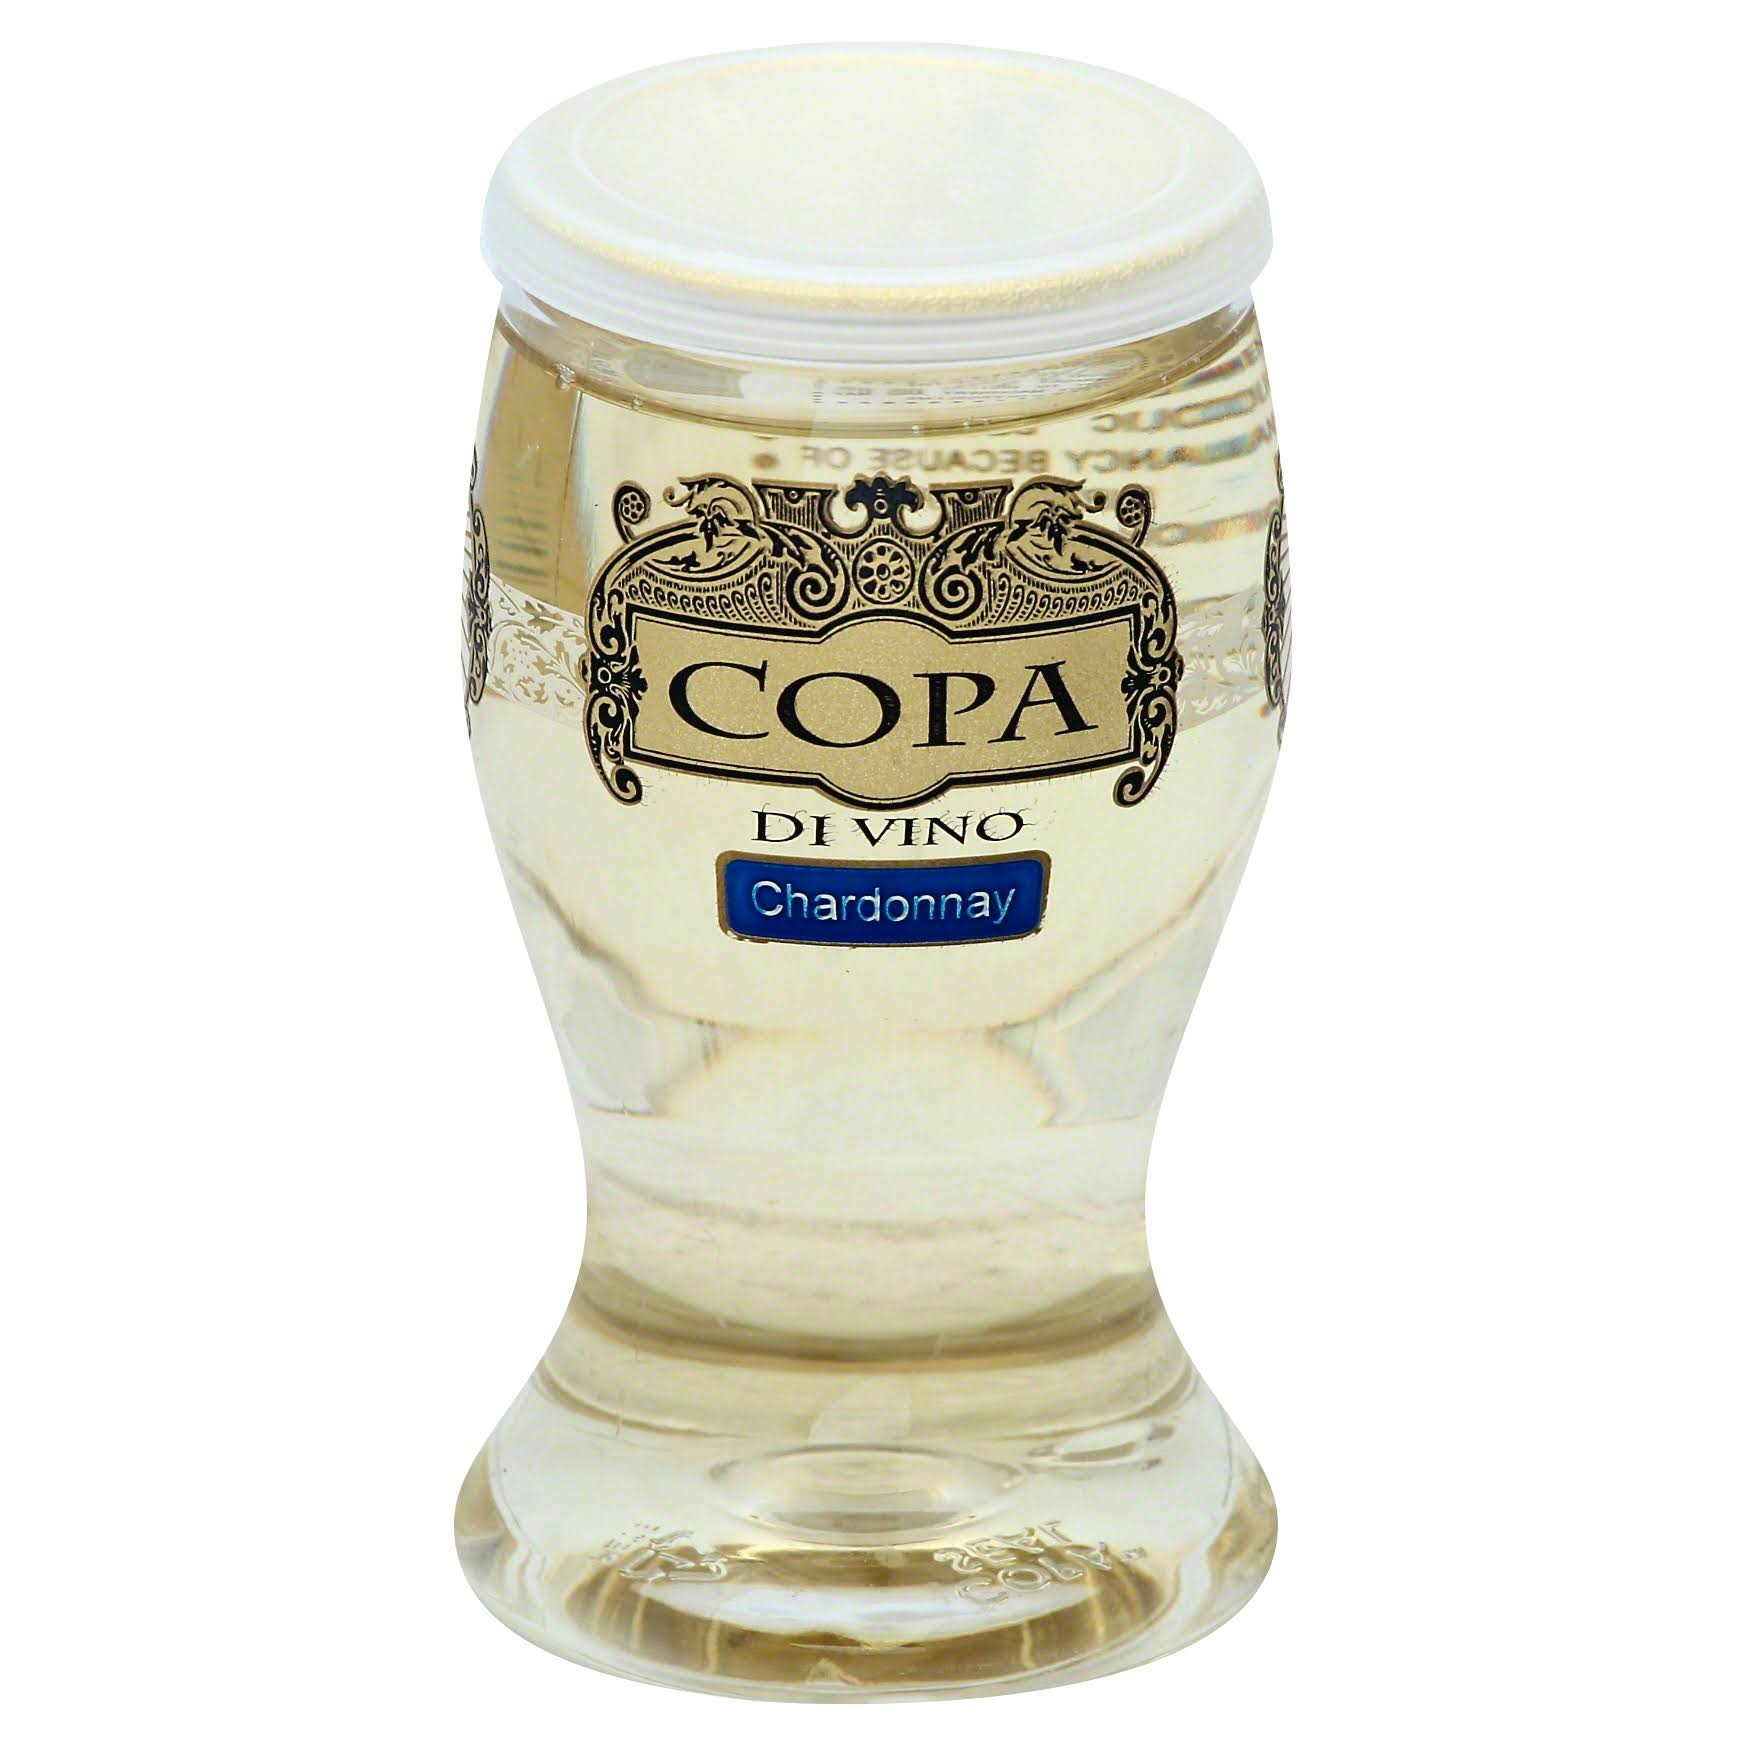 Copa Di Vino Chardonnay Single Serve Glass